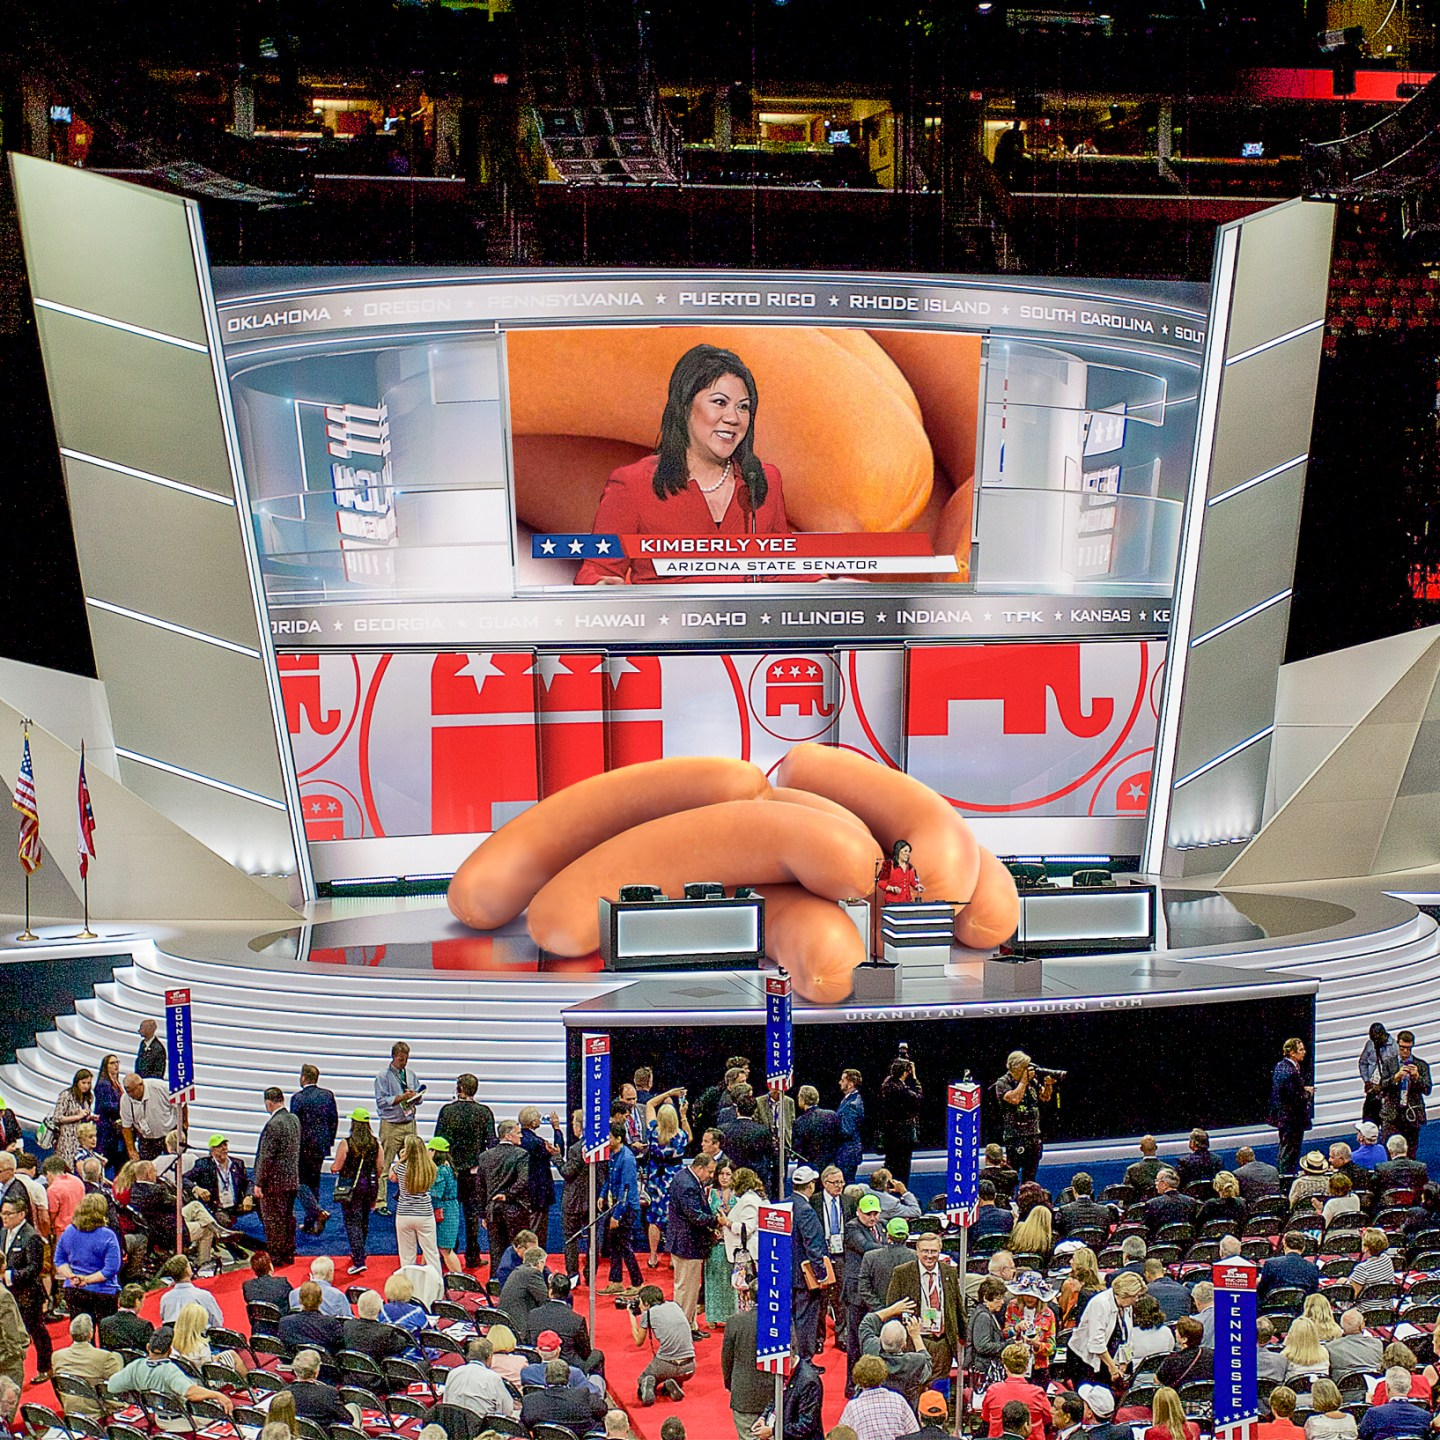 Huge Hot Dog Recall Affects GOPPER RNC Convention